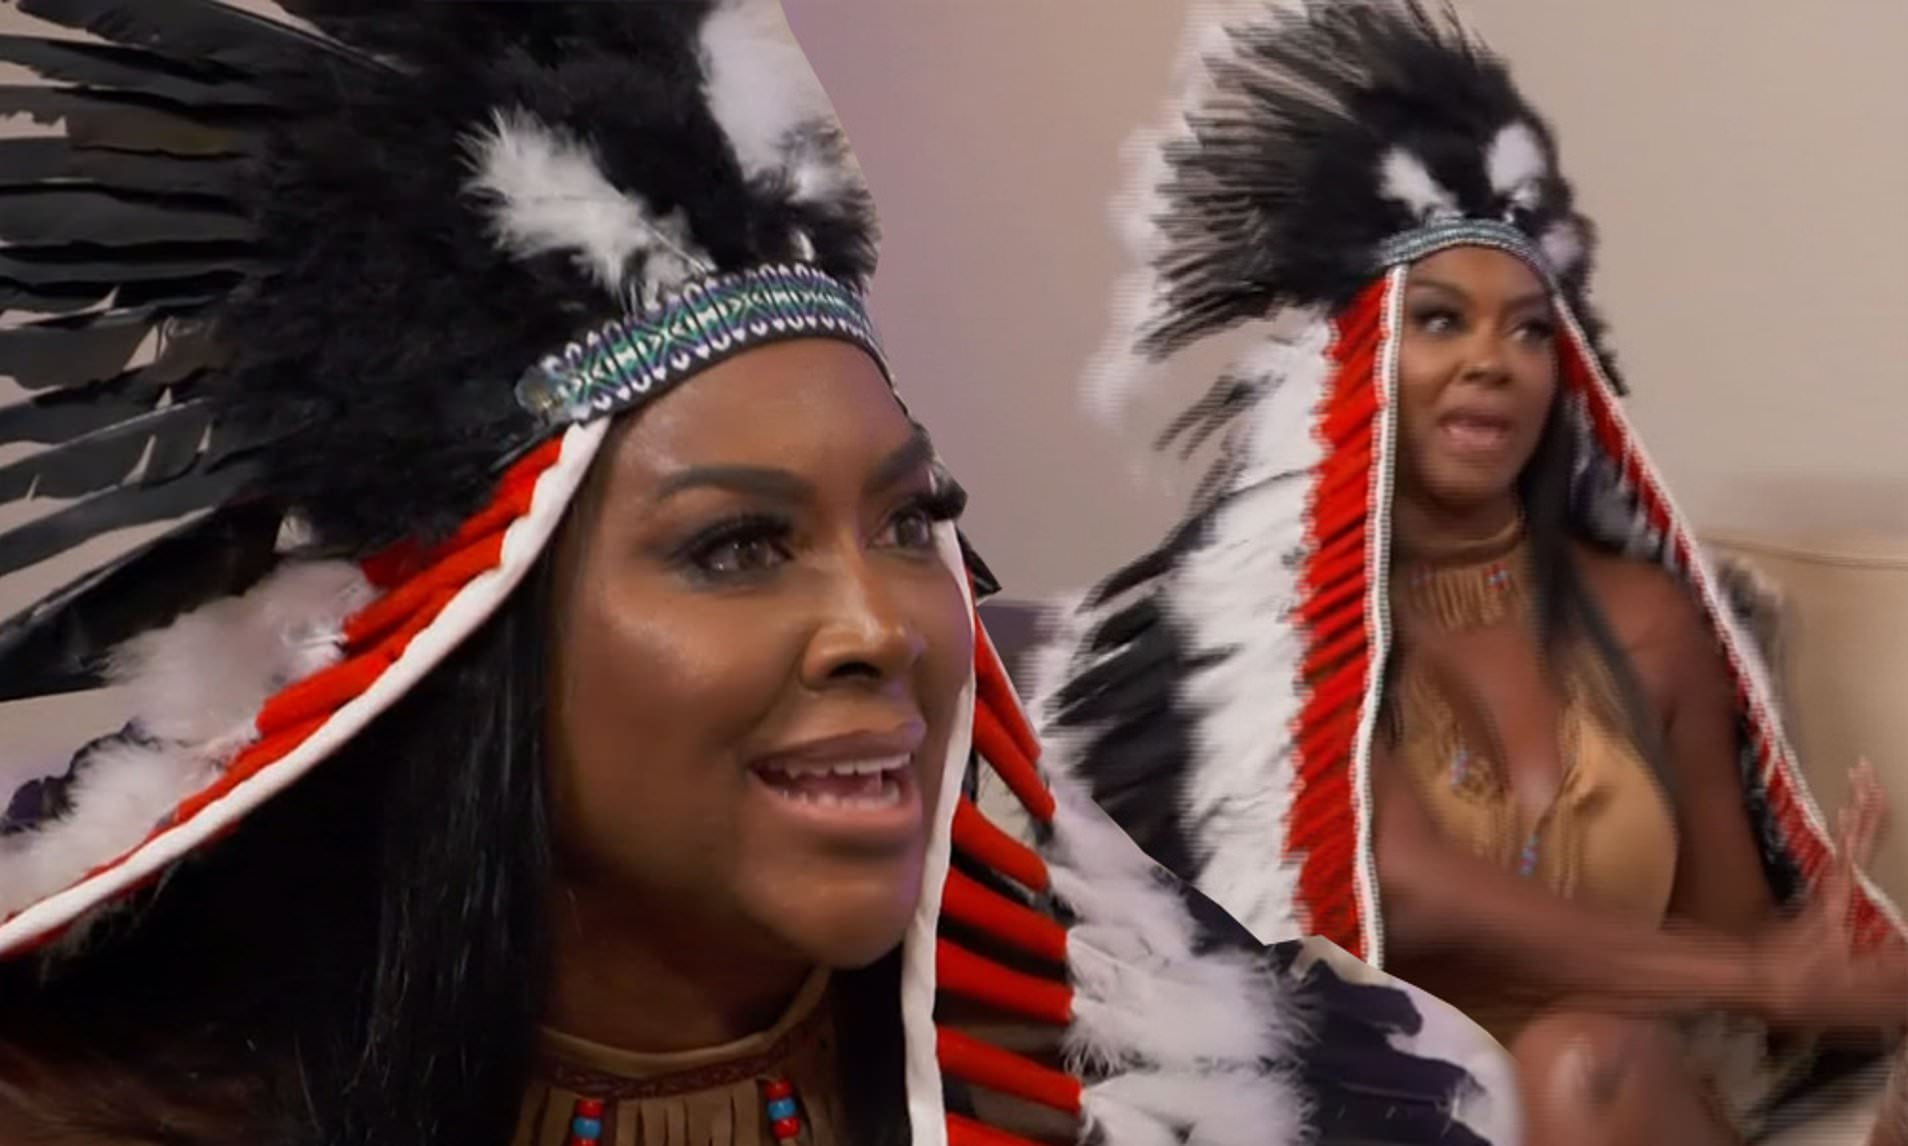 Kenya Moore Defends Herself After Wearing 'Problematic' Native American Halloween Costume